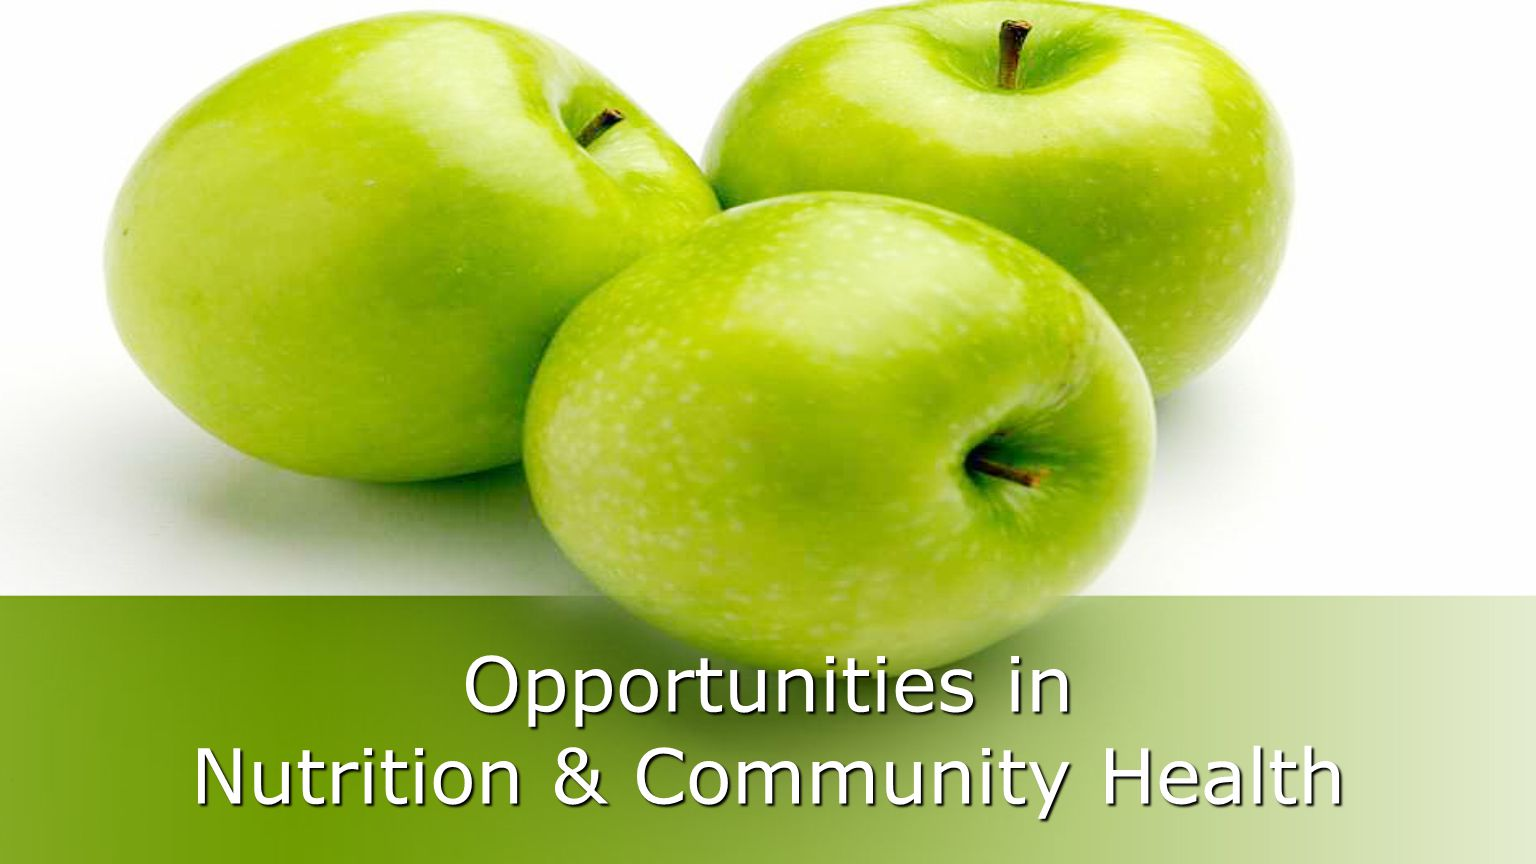 Opportunities in Nutrition & Community Health